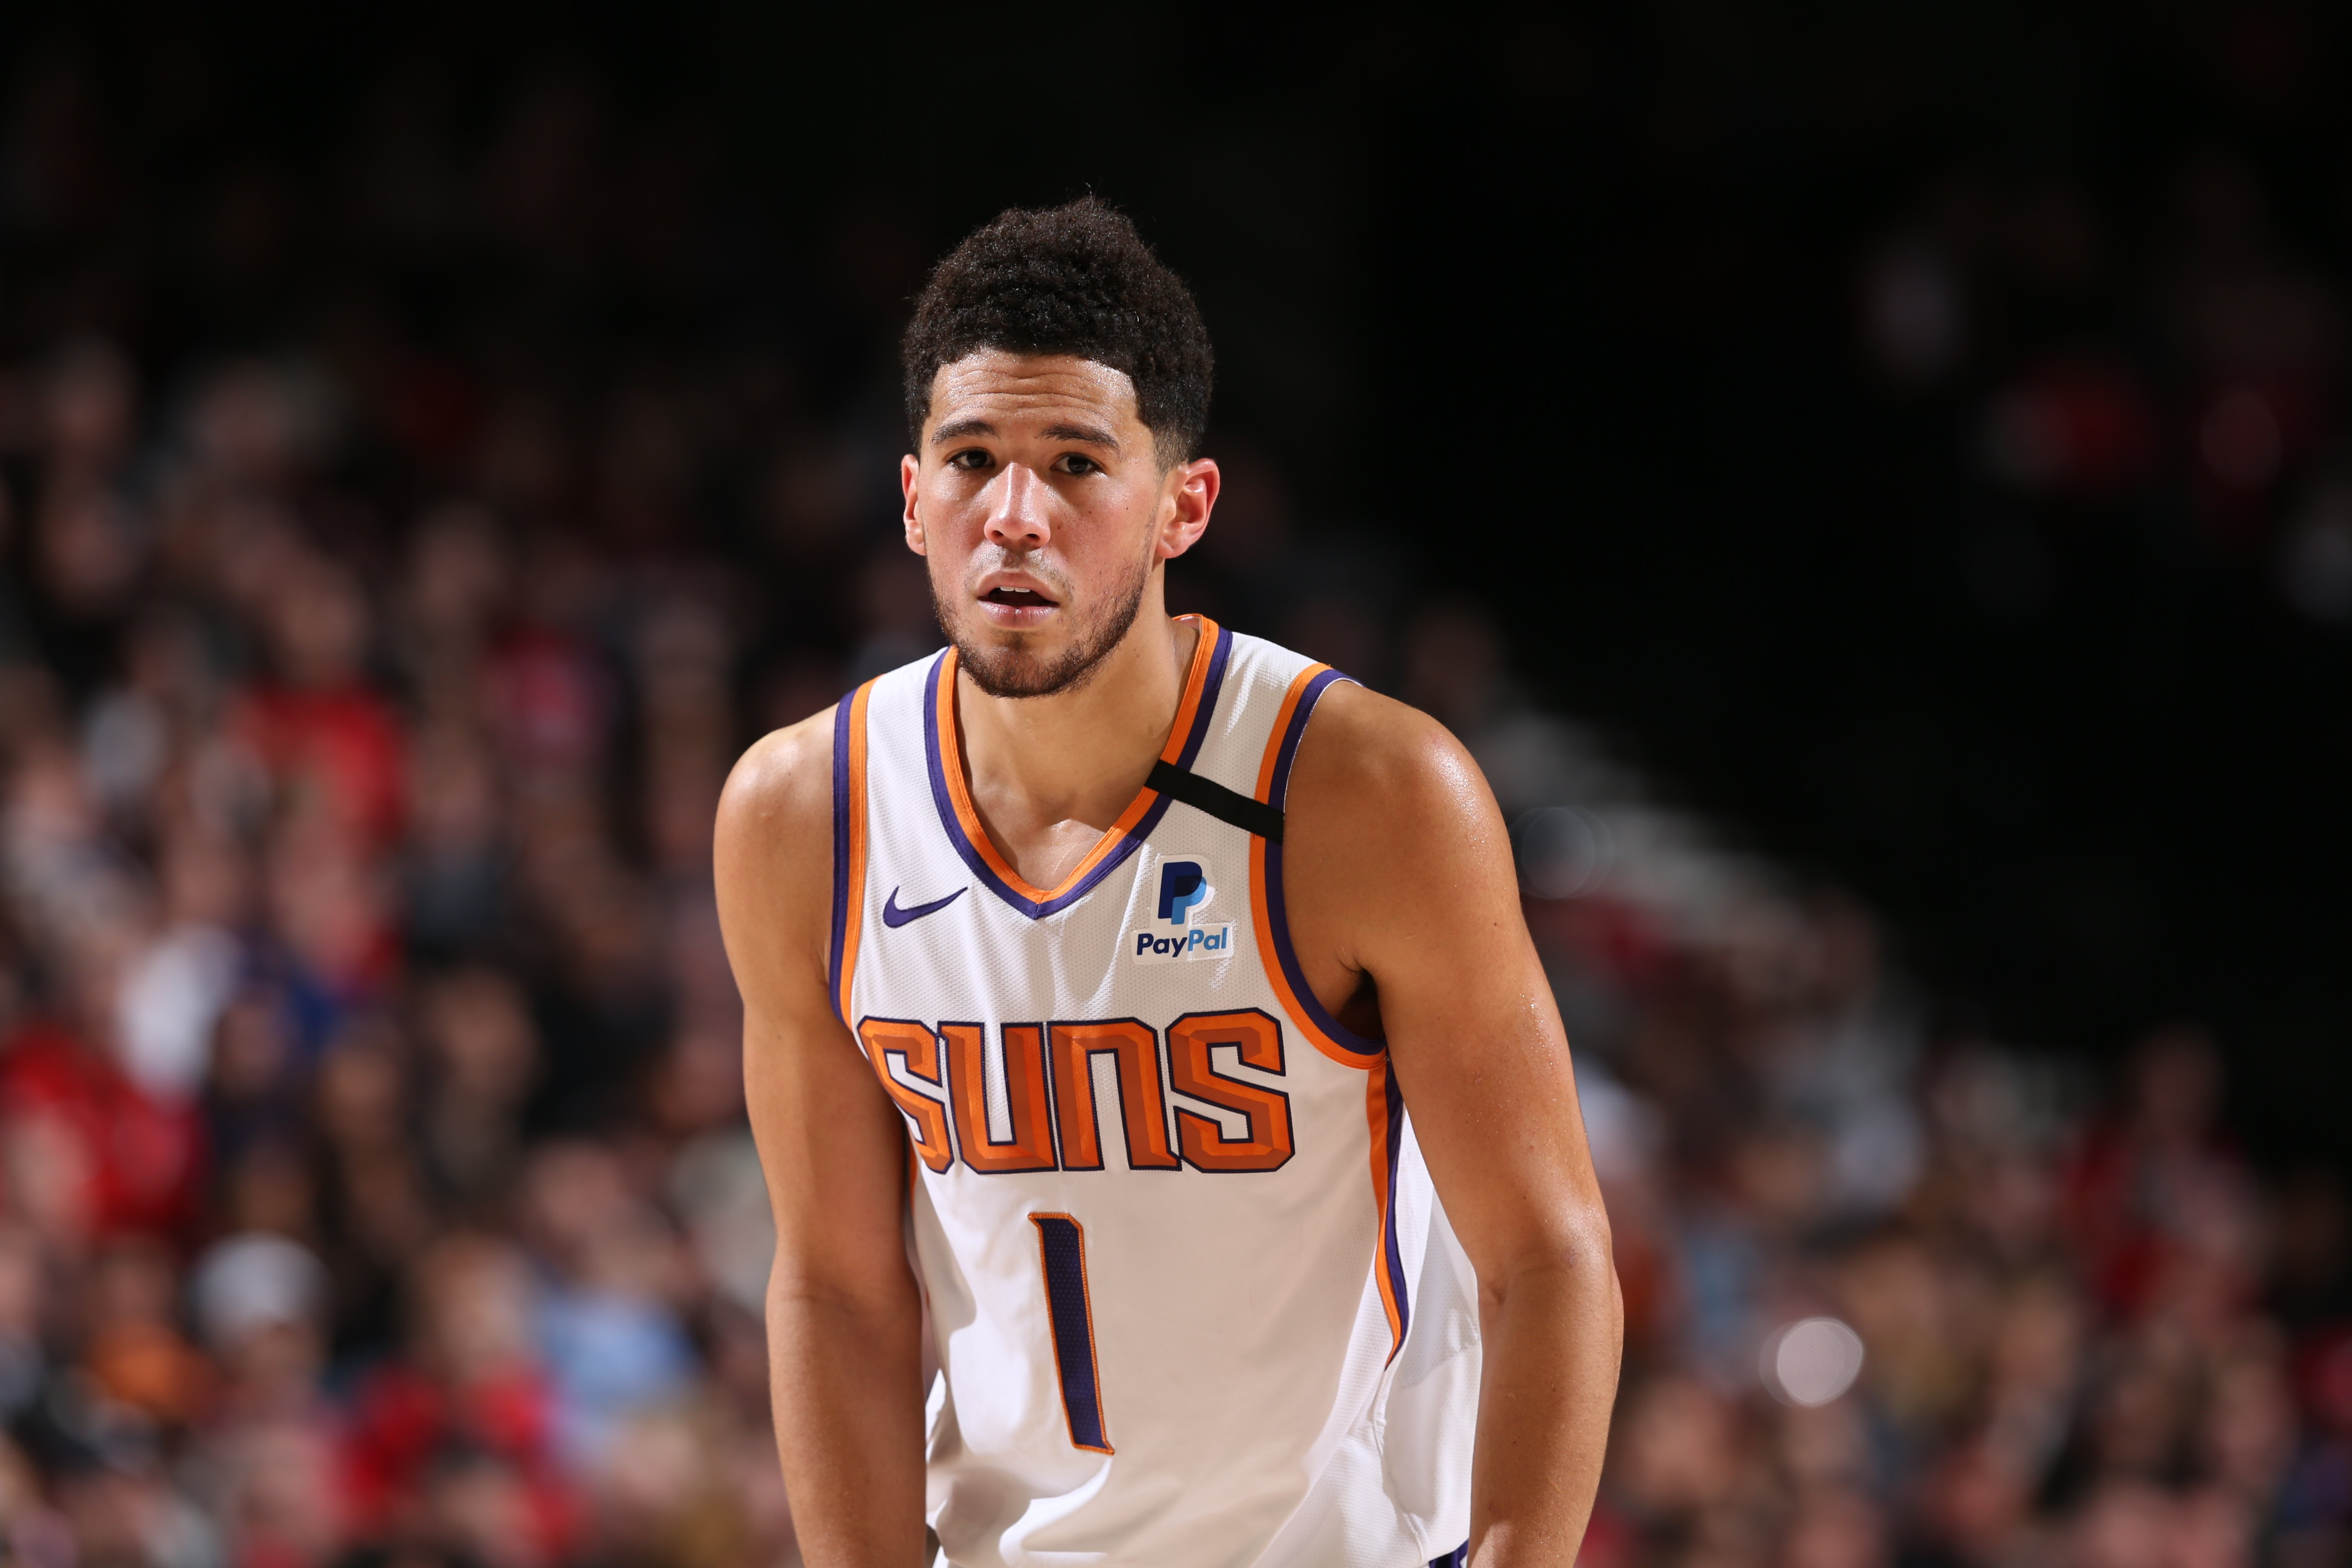 Devin Booker during a game on March 10 , 2020 at the Moda Center Arena | Photo: Getty Images